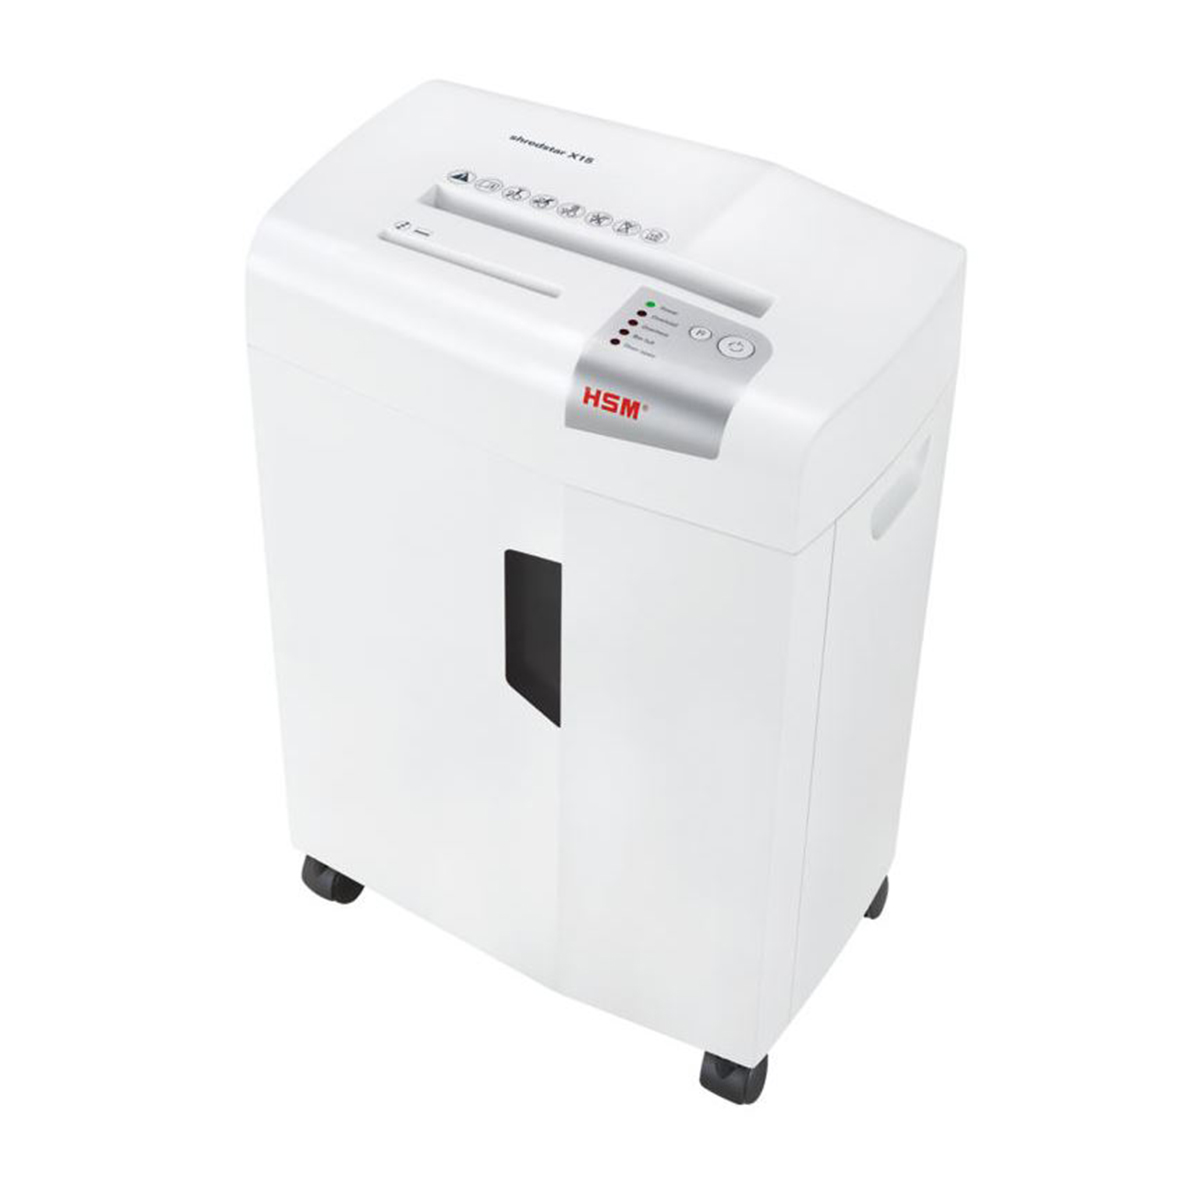 HSM Shredstar X15 4 x 35mm Particle Cut Shredder White